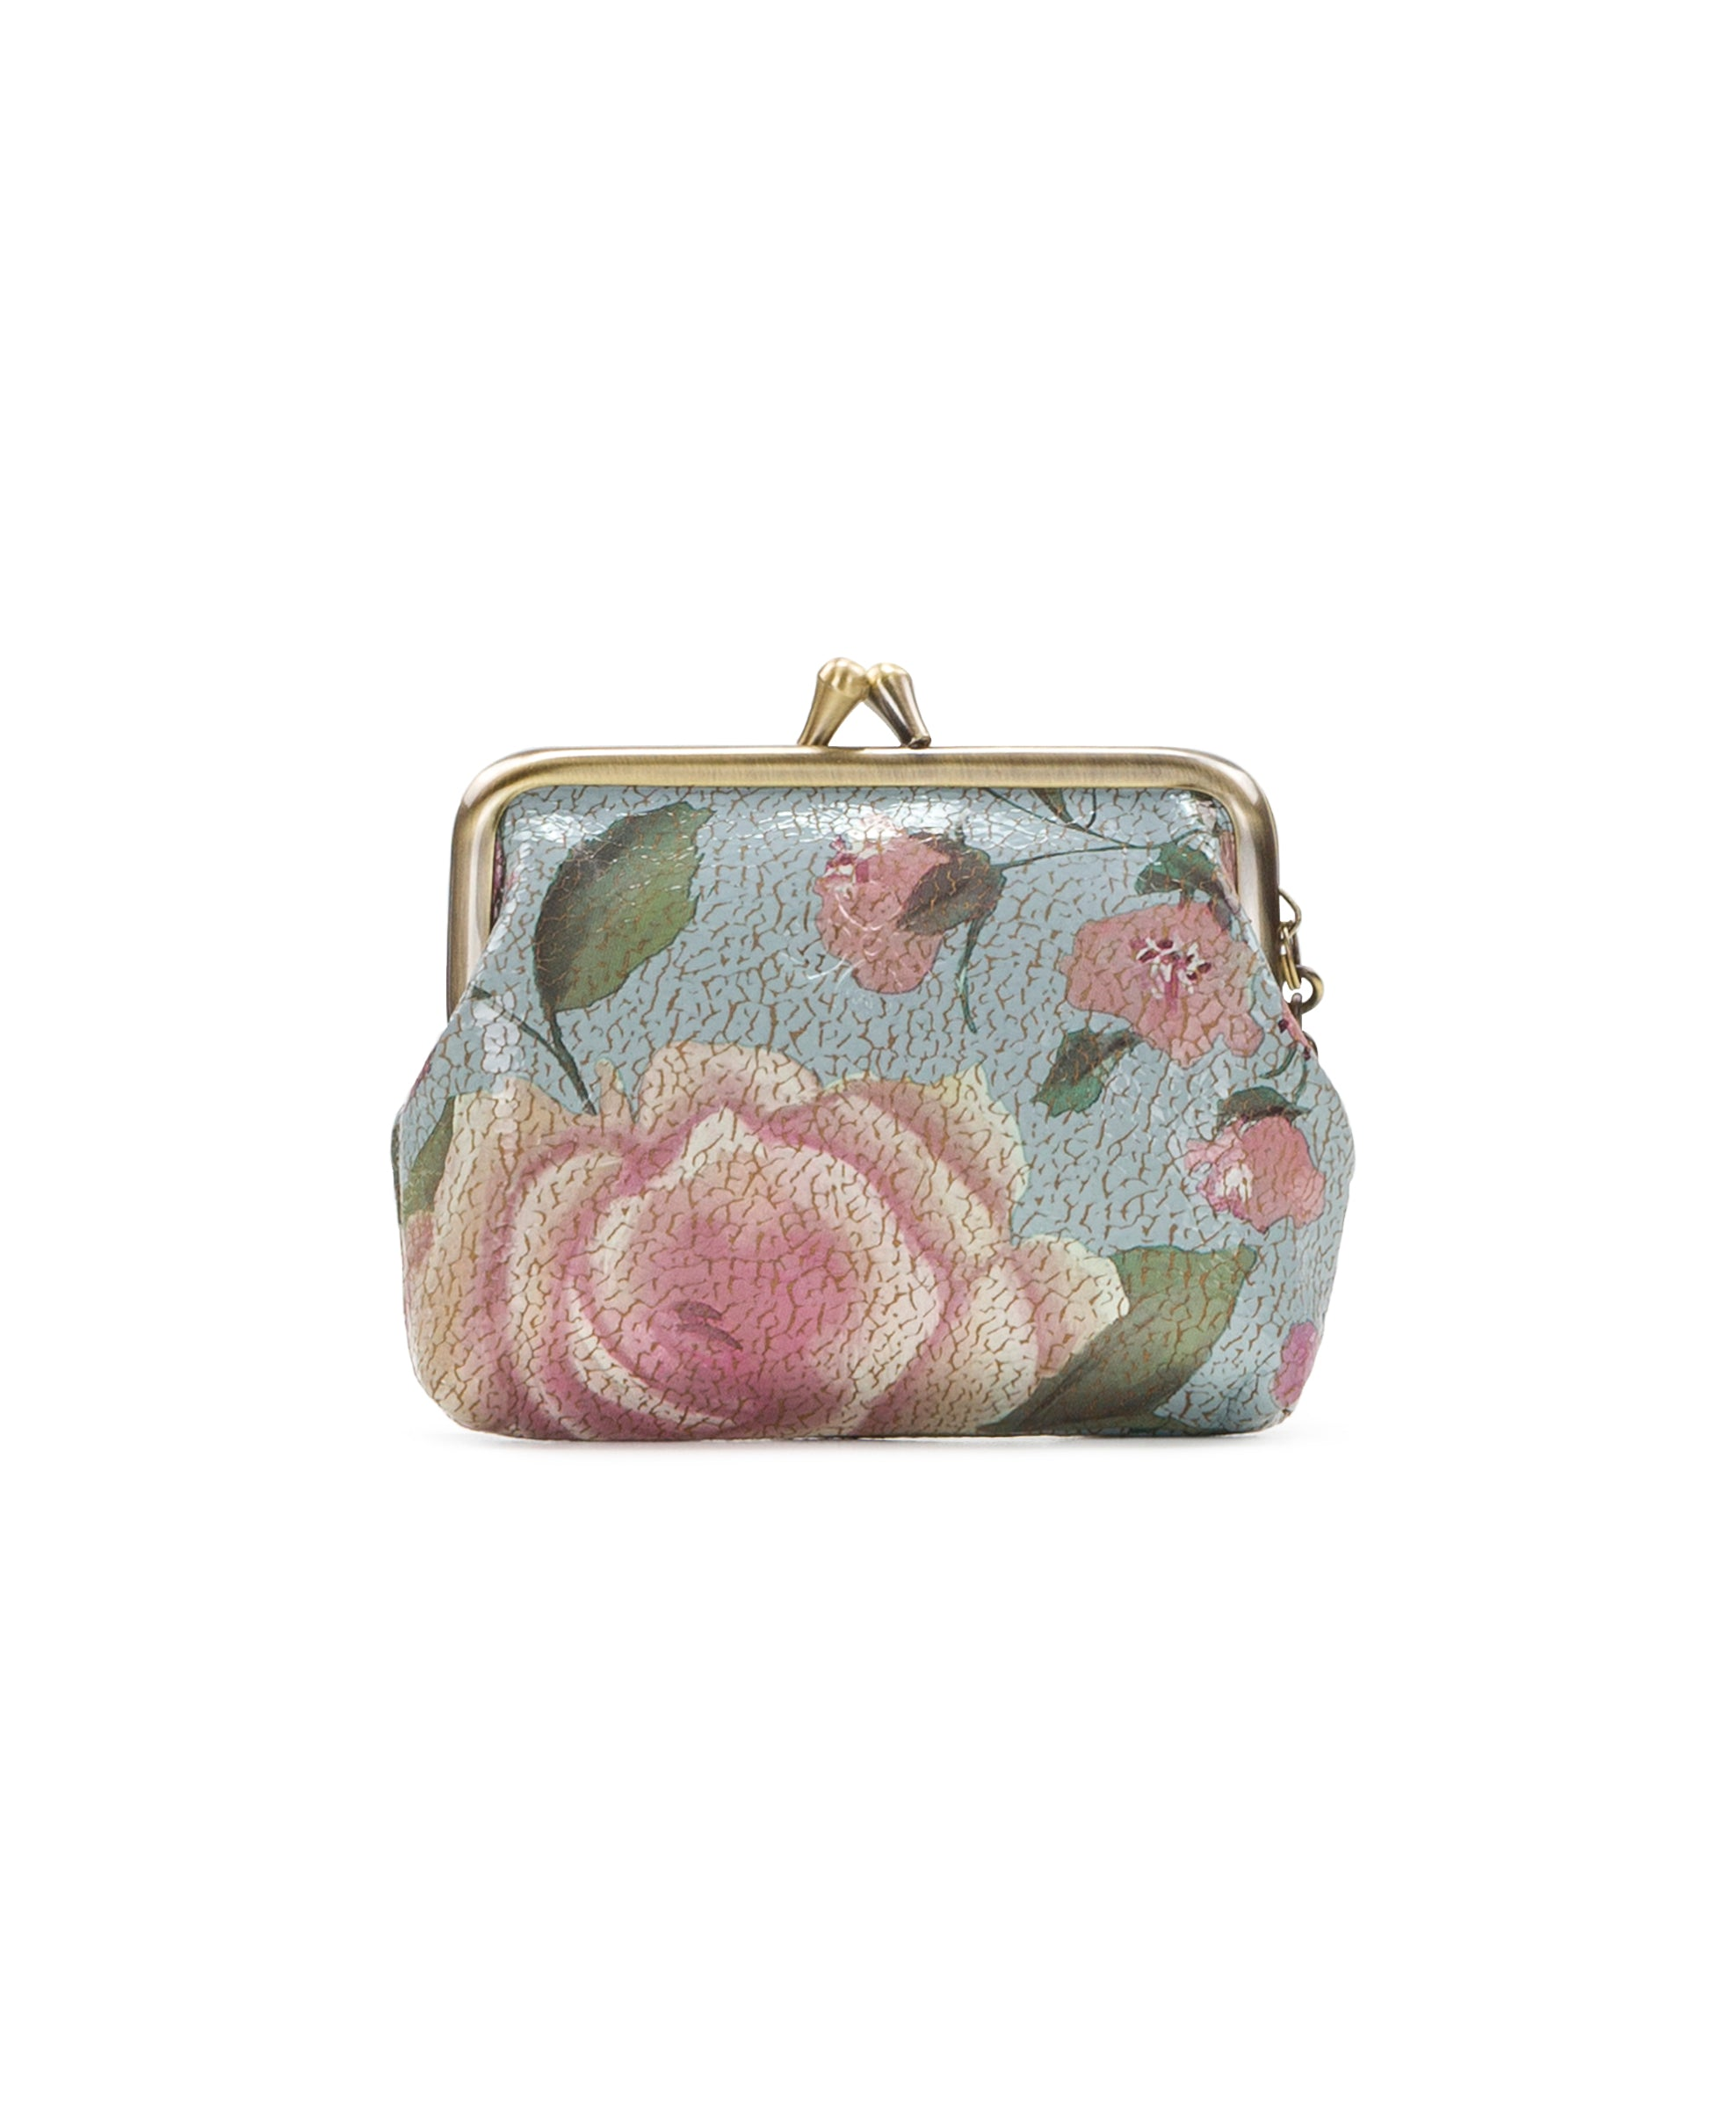 Borse Coin Purse - Crackled Rose 2